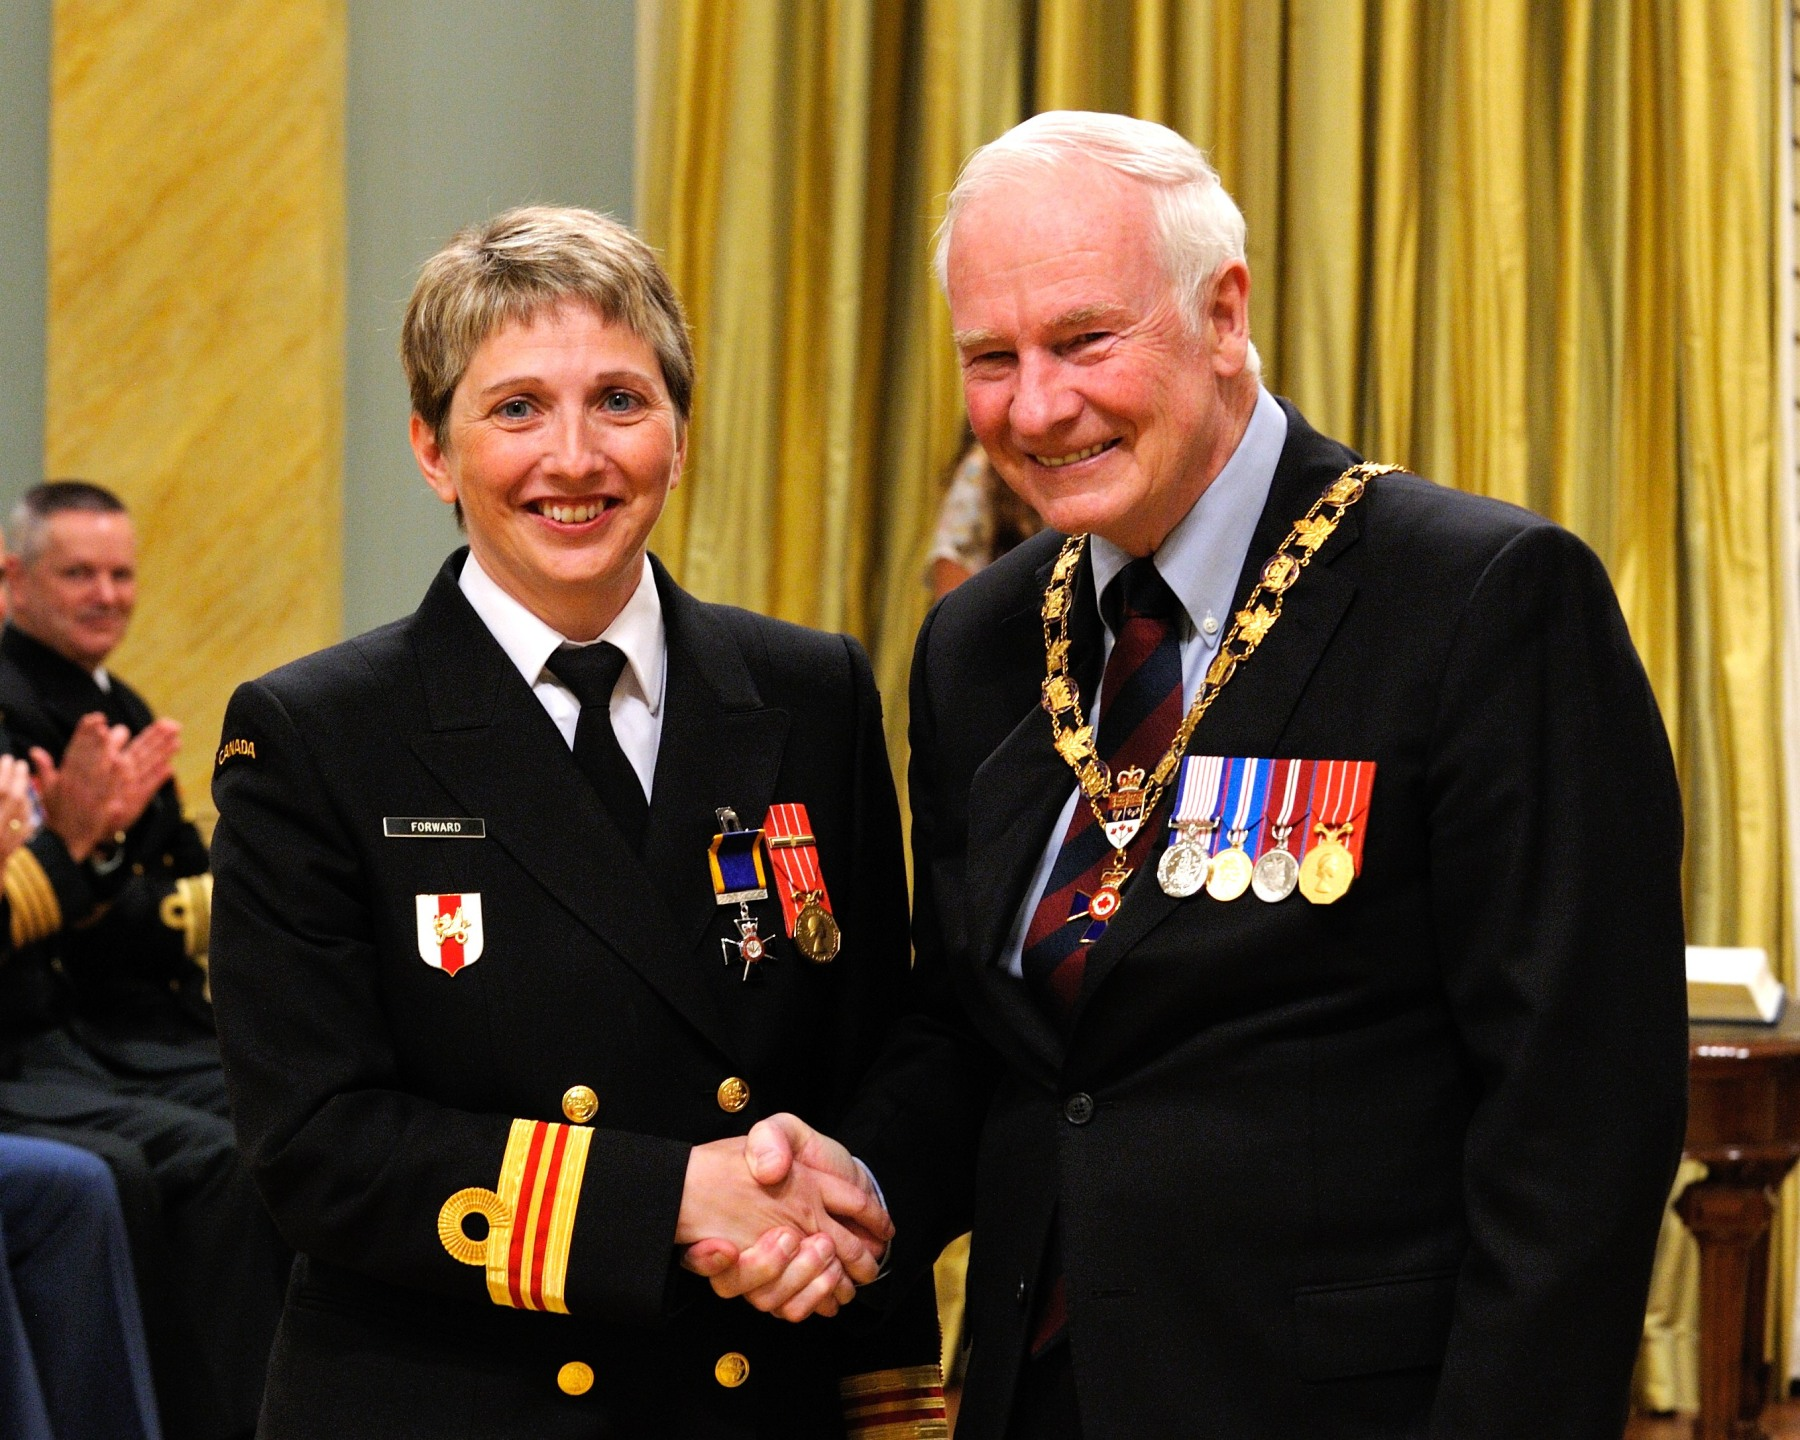 His Excellency presented the Order of Military Merit at the Member level (M.M.M.) to Lieutenant (N) Linda Forward, M.M.M., C.D., 2nd Battalion Princess Patricia's Canadian Light Infantry, Shilo, Manitoba.